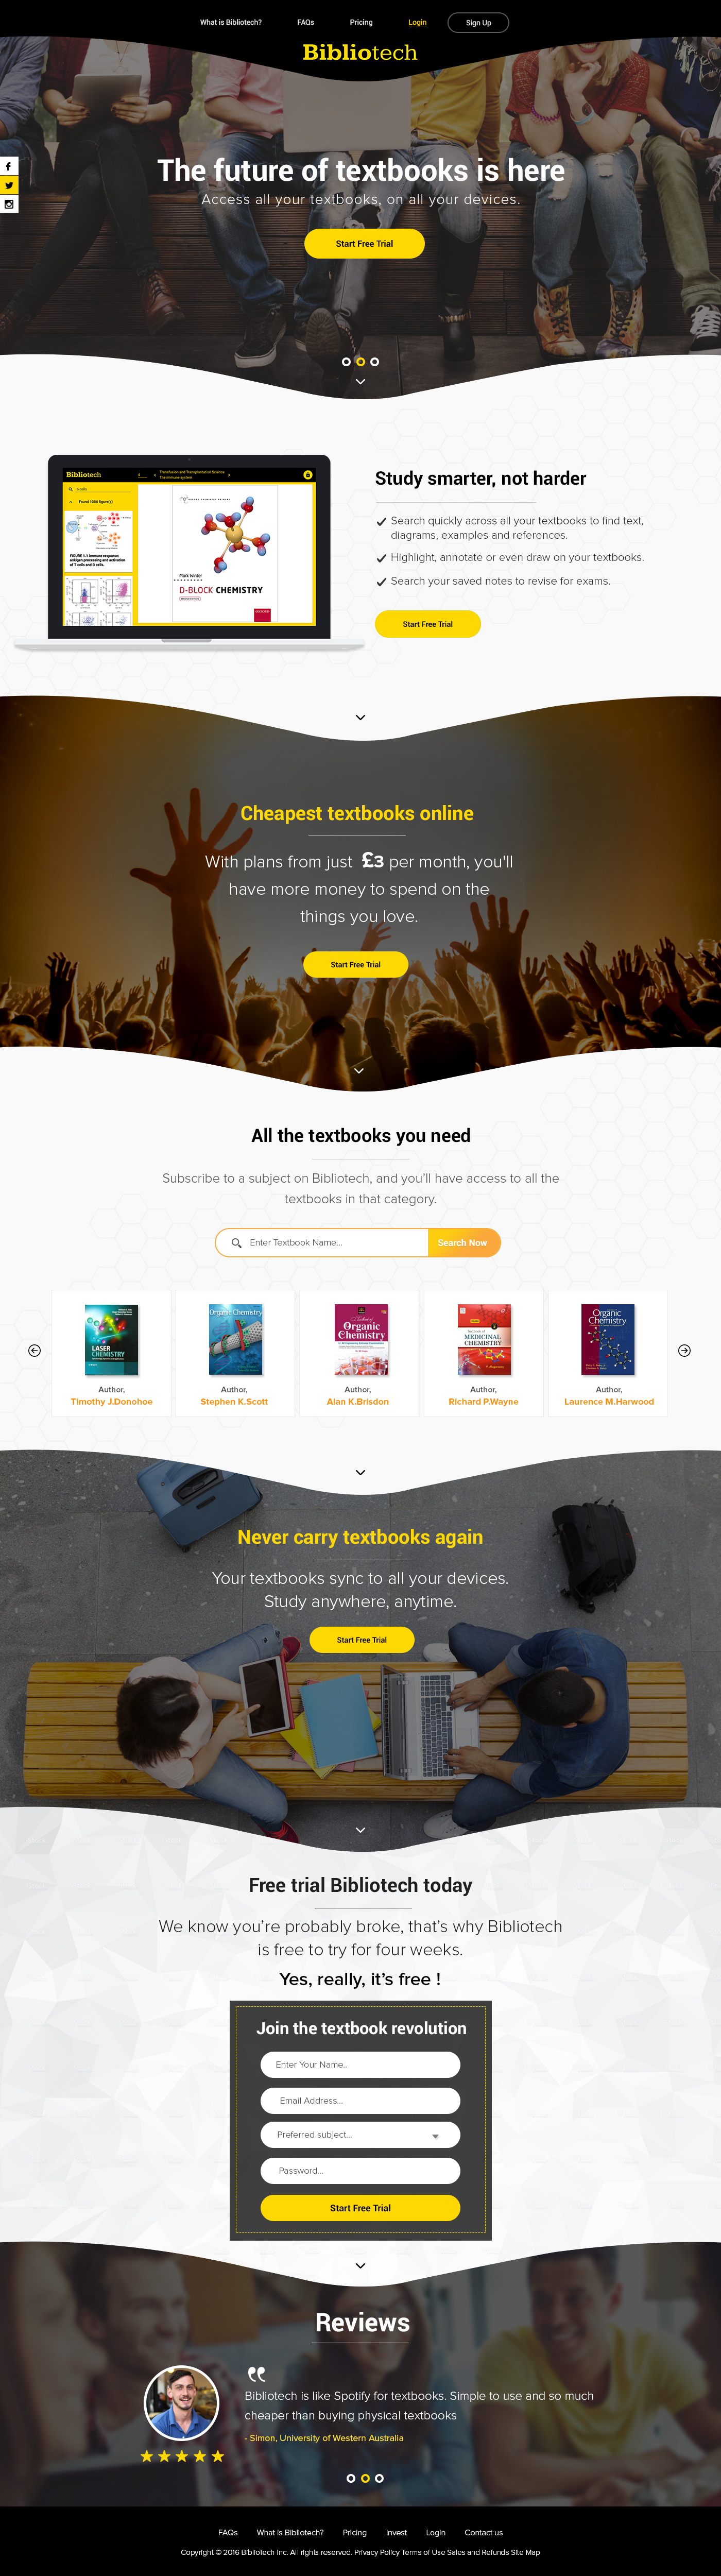 Landing page for 'Spotify for textbooks' app called Bibliotech